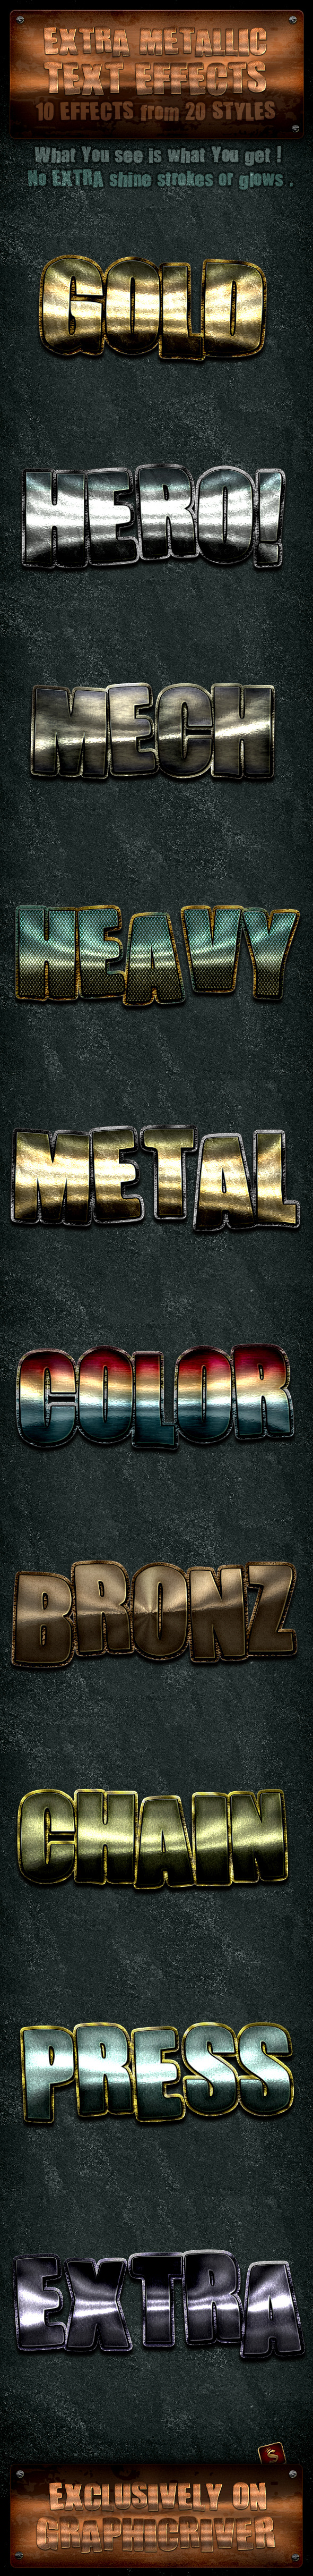 Metallic Text Effects - Text Effects Styles